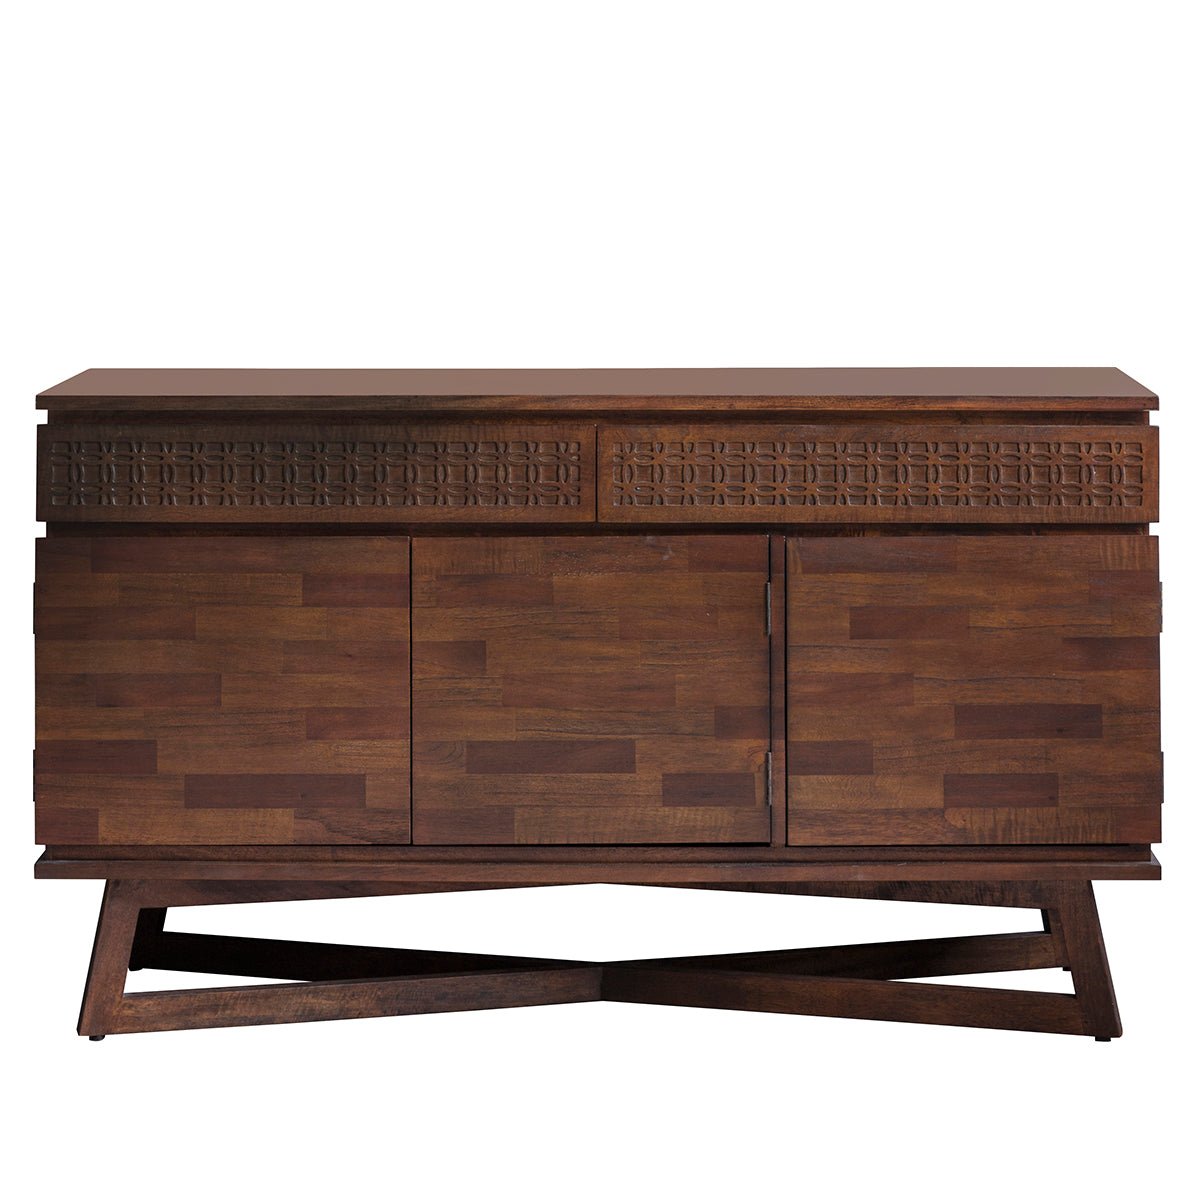 Greenwich 3 Door  2 Drawer Sideboard in Natural - Ezzo